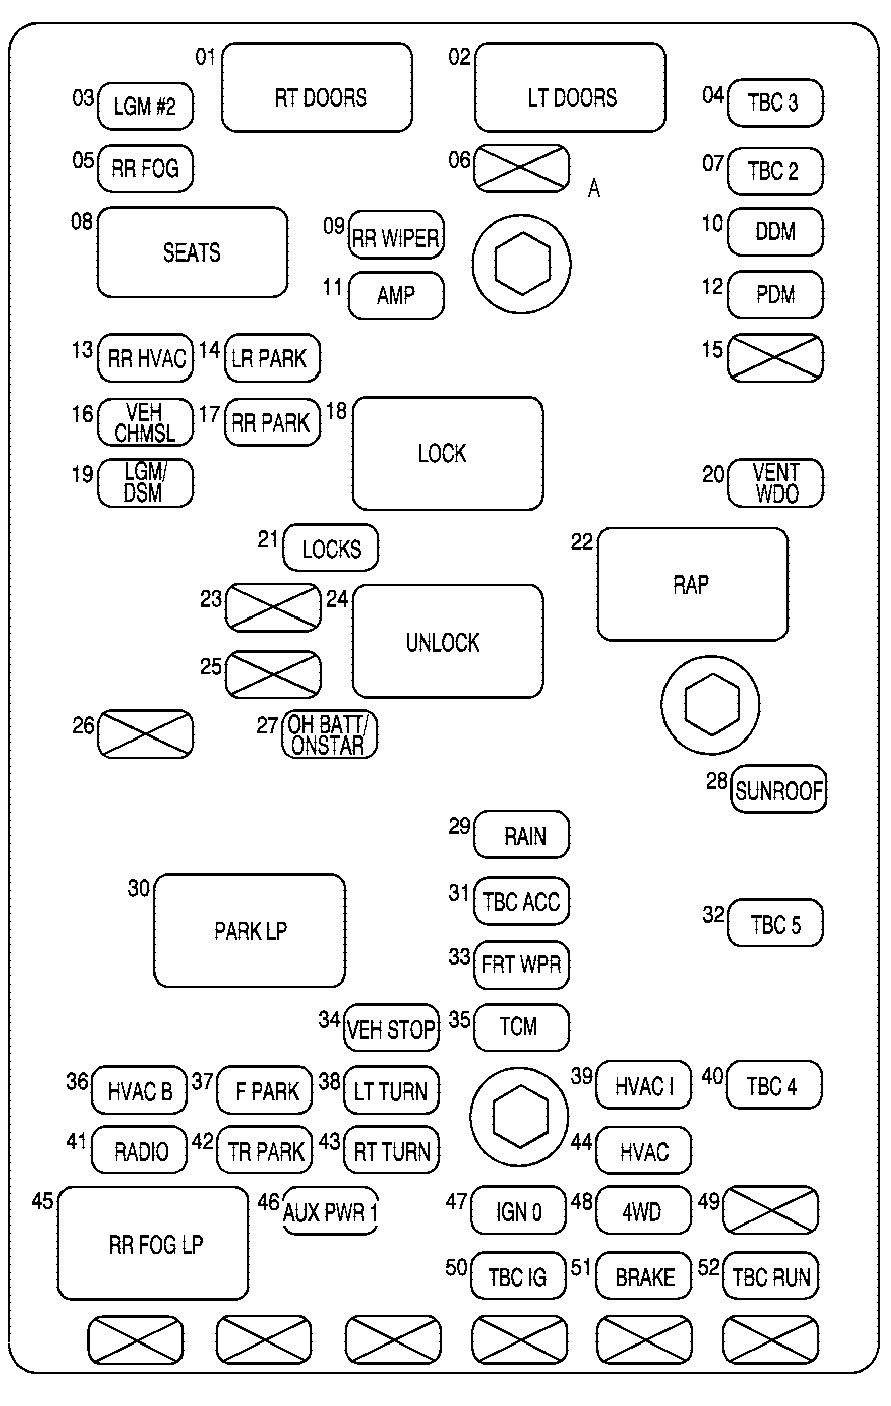 gmc envoy fuse box diagram - wiring diagram overview wires-bake -  wires-bake.aigaravenna.it  aigaravenna.it